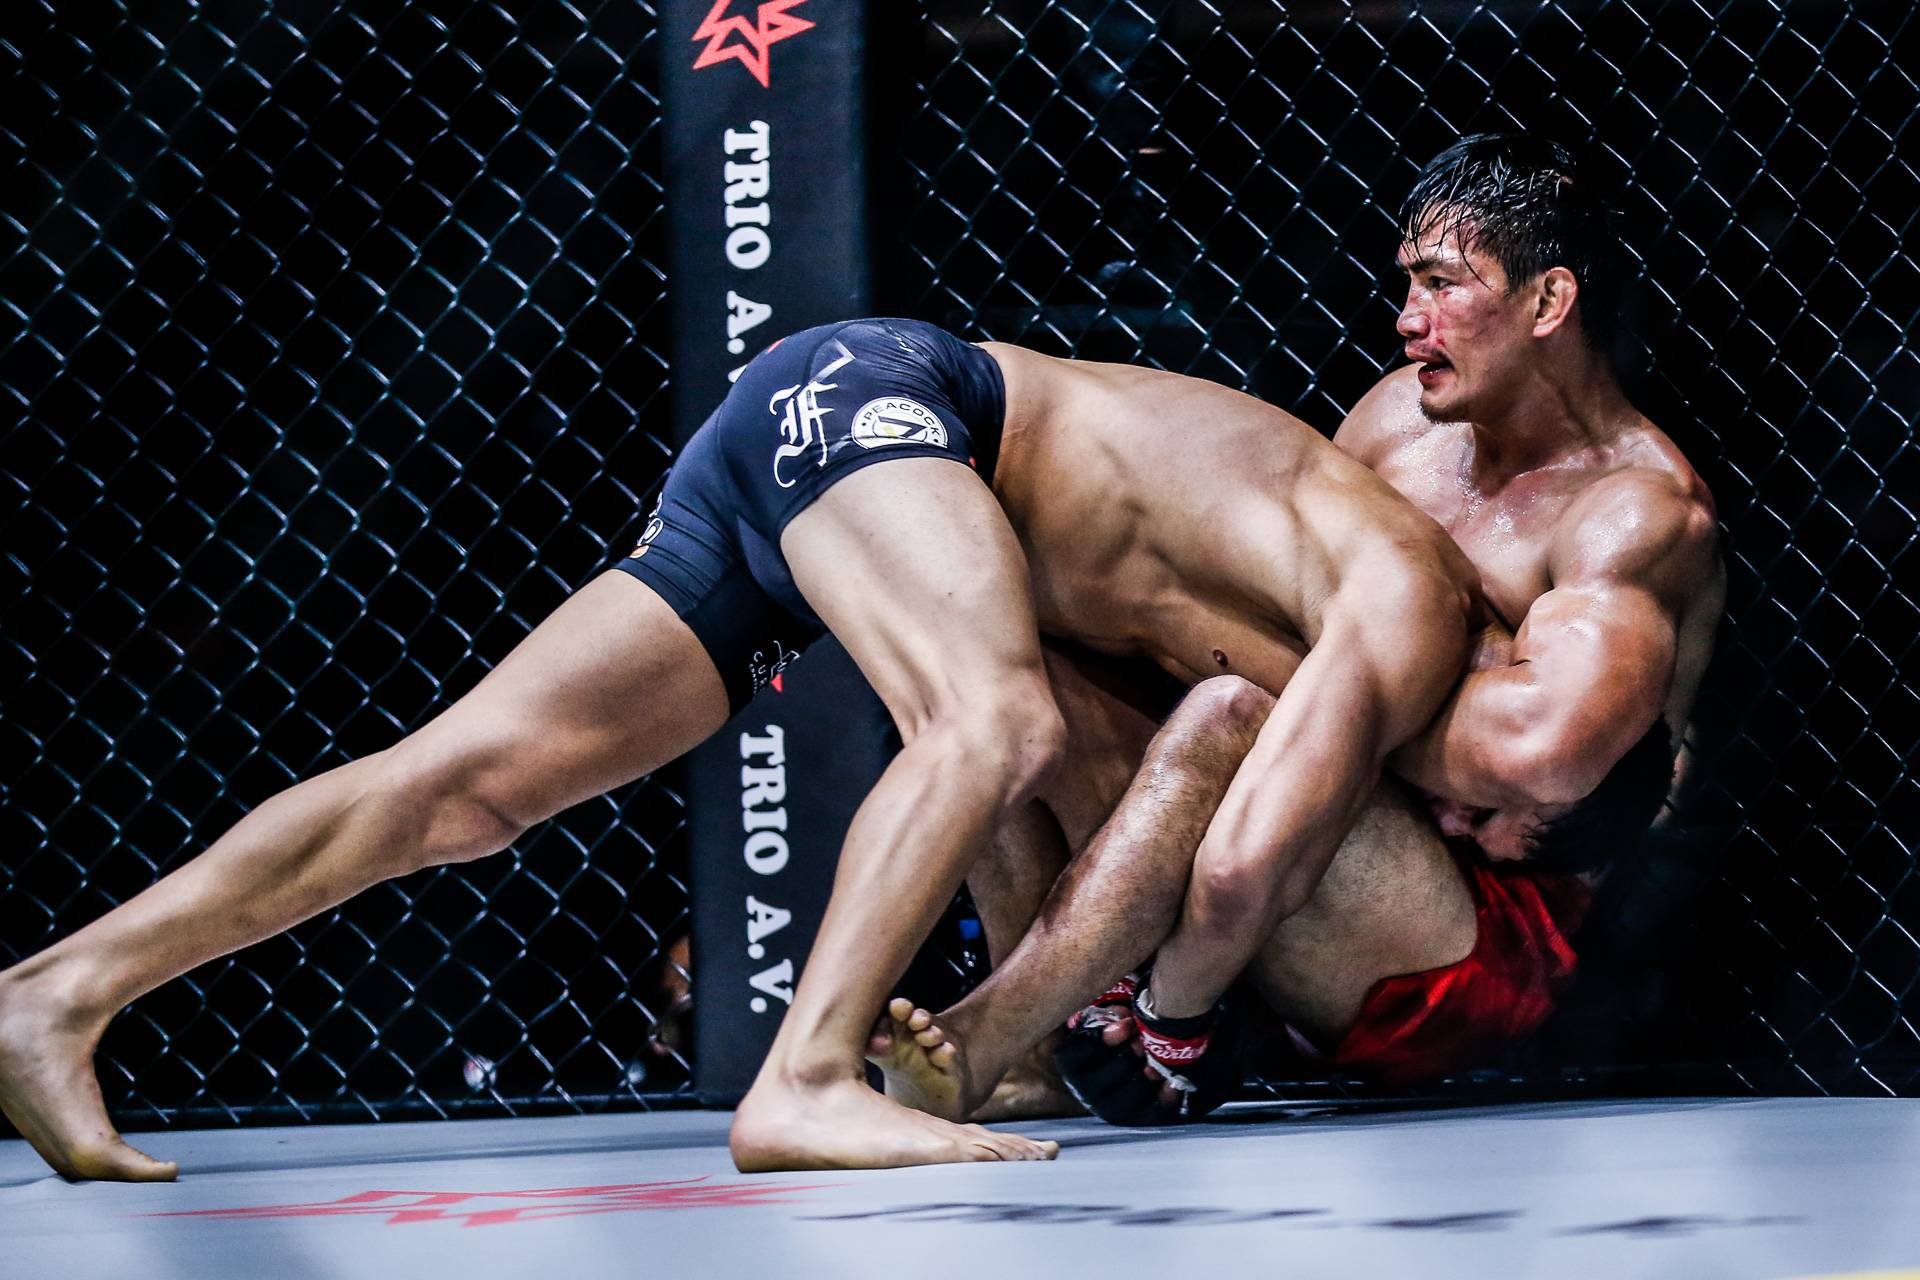 ONE-Inside-The-Matrix-Caruso-takes-down-Folayang Sangiao admits ring rust played role in Team Lakay's ONE: Inside The Matrix setbacks Mixed Martial Arts News ONE Championship  - philippine sports news